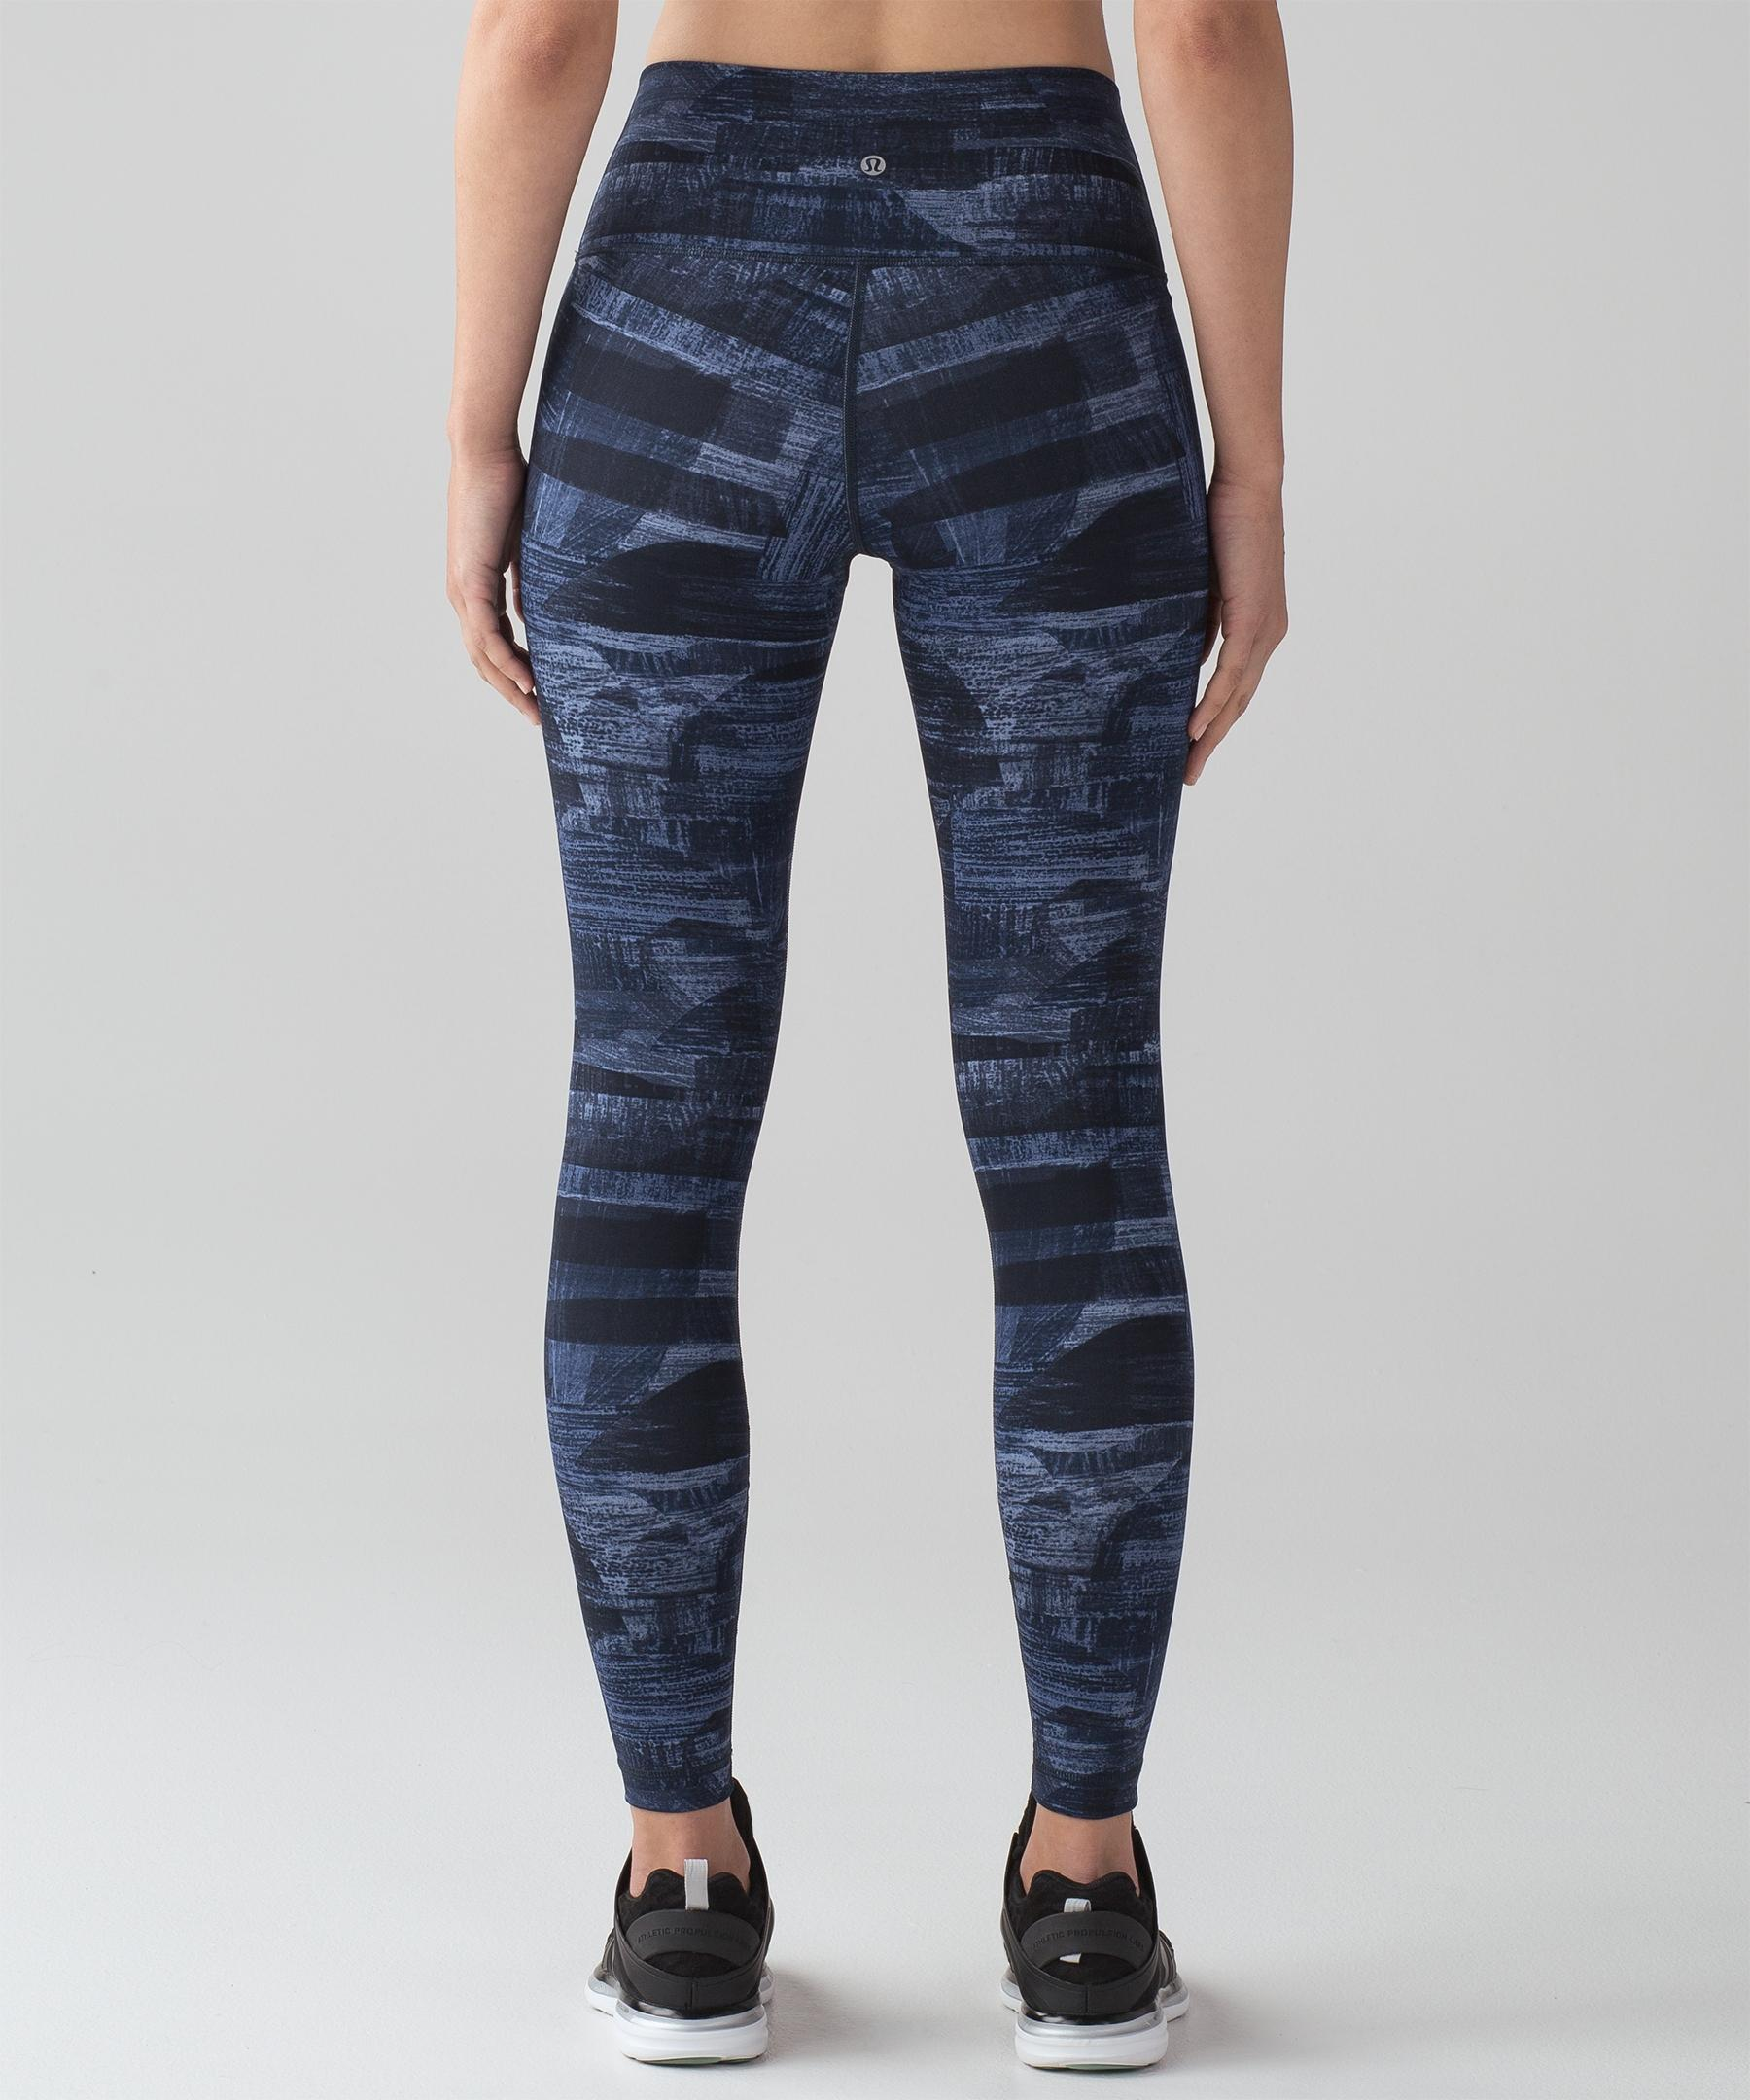 74f3806aa40984 Gallery. Previously sold at: lululemon athletica · Women's Pinstripe Pants  ...